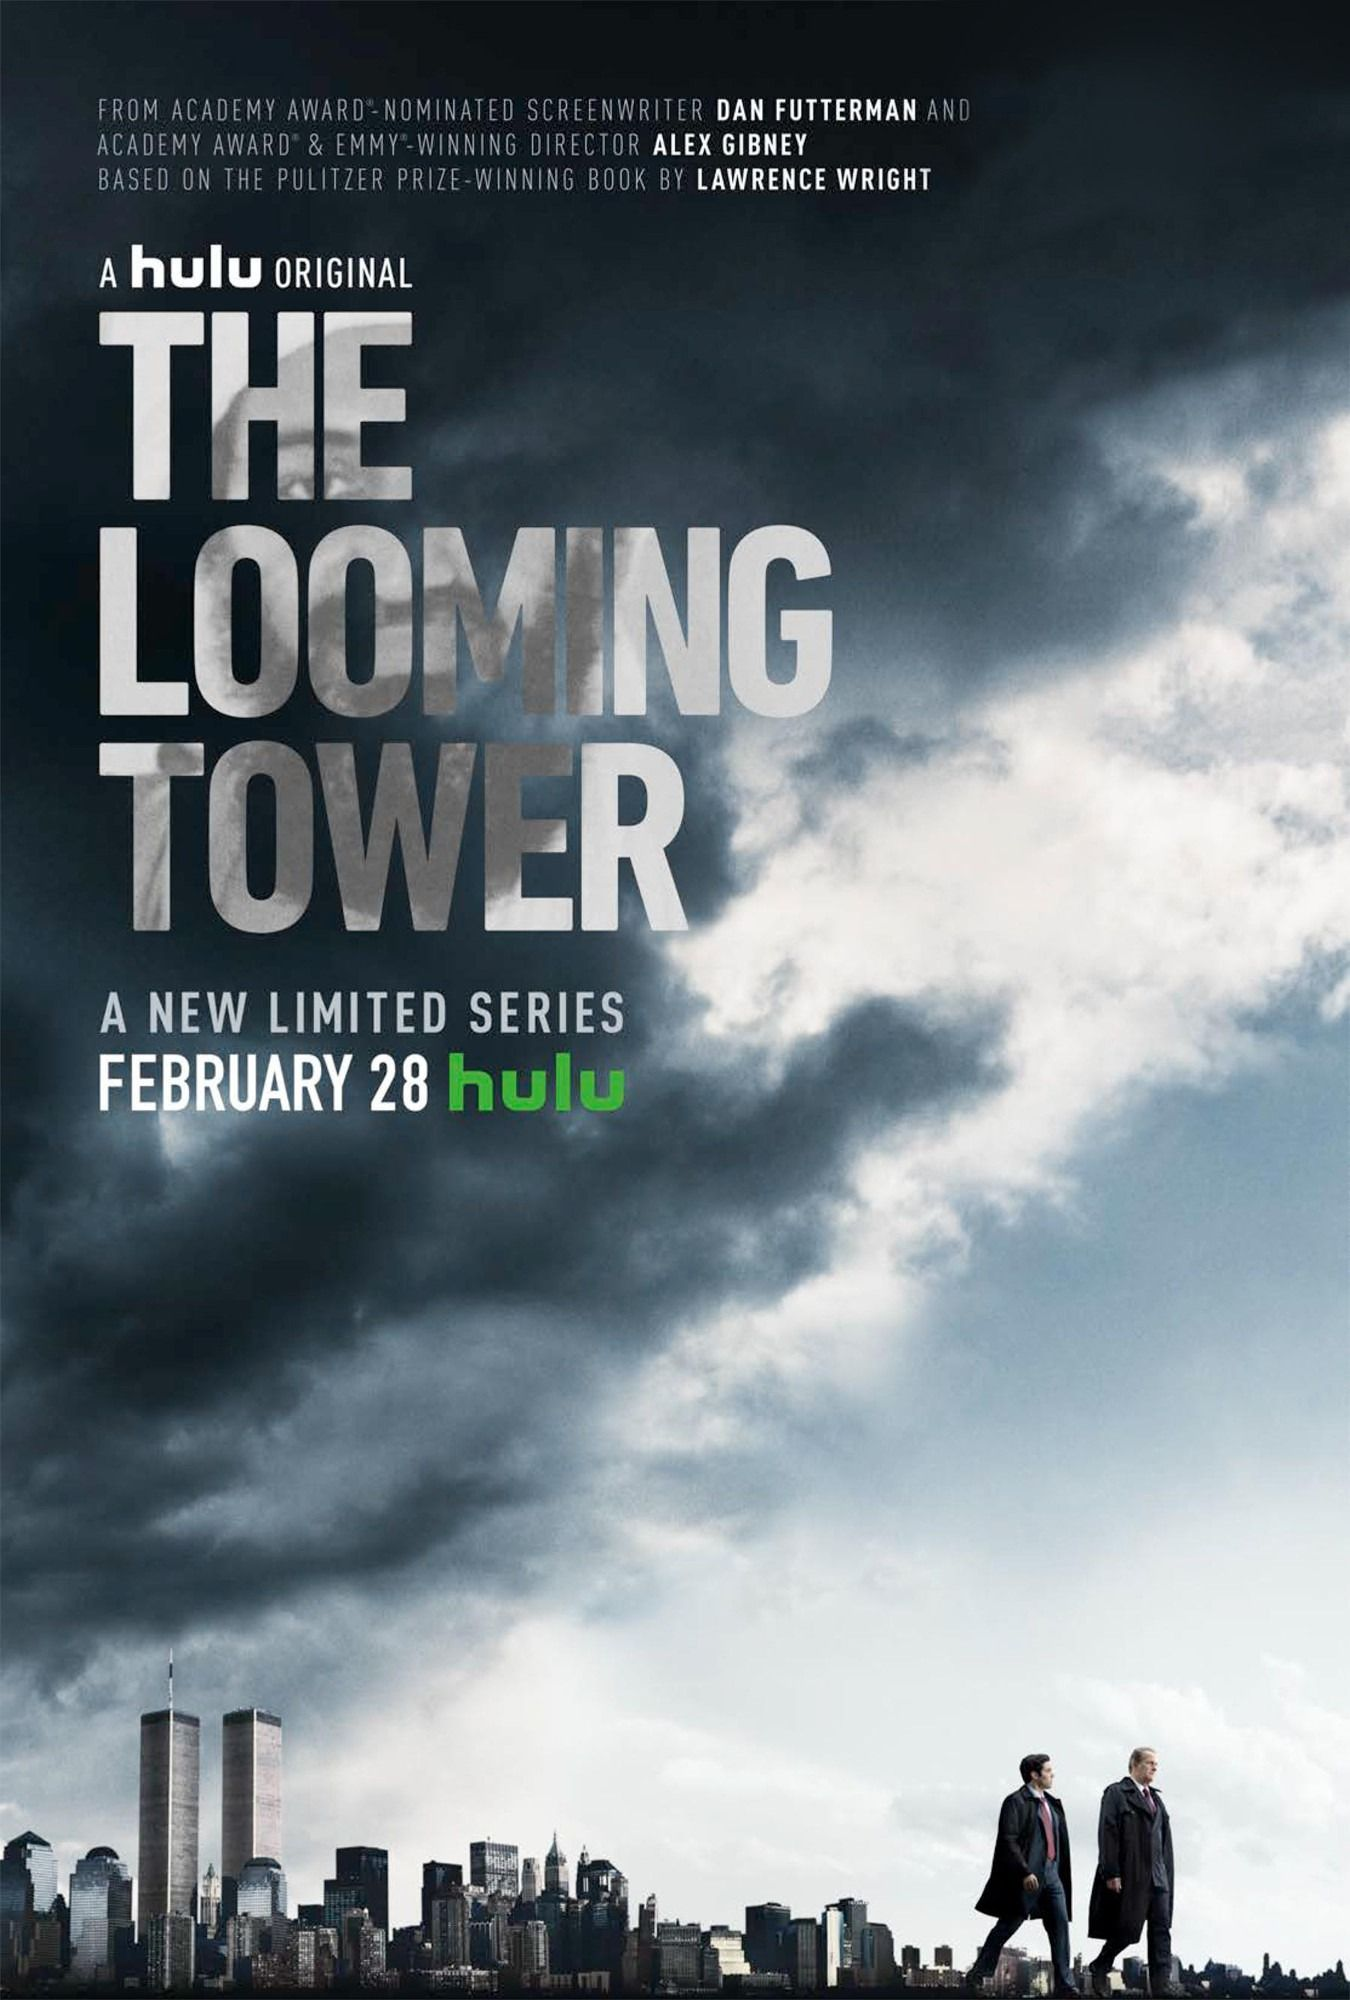 Mega sized movie poster image for the looming tower 1 of 2 mega sized movie poster image for the looming tower 1 of 2 fandeluxe Images